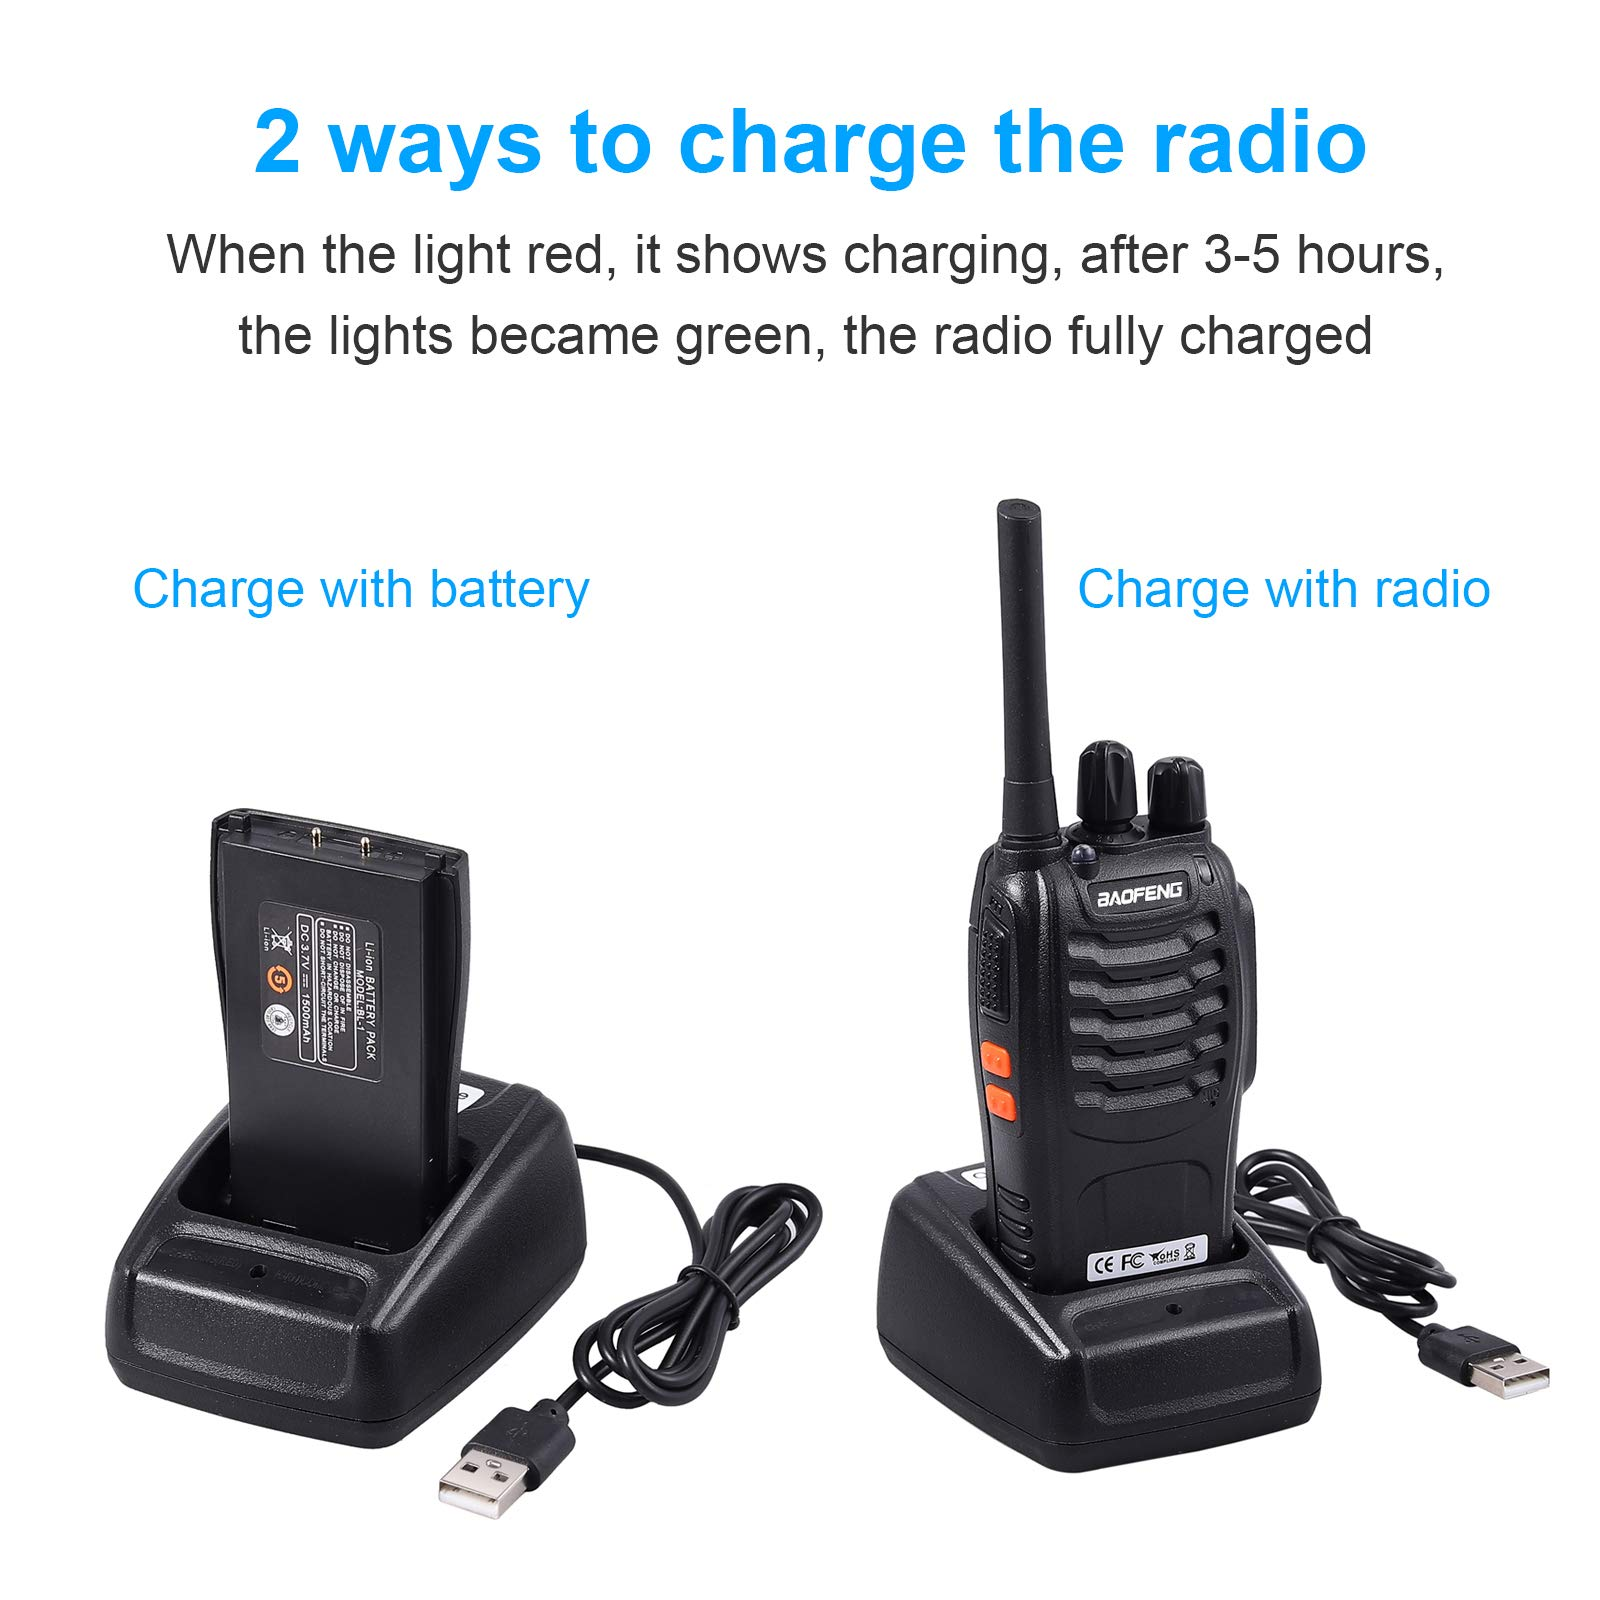 Neoteck 2 PCS Walkie Talkies Long Range 16 Channel 2 Way Radio FRS462MHz Walky Talky Rechargeable with USB Charger Original Earpieces for Field Survival Biking Hiking by Neoteck (Image #2)